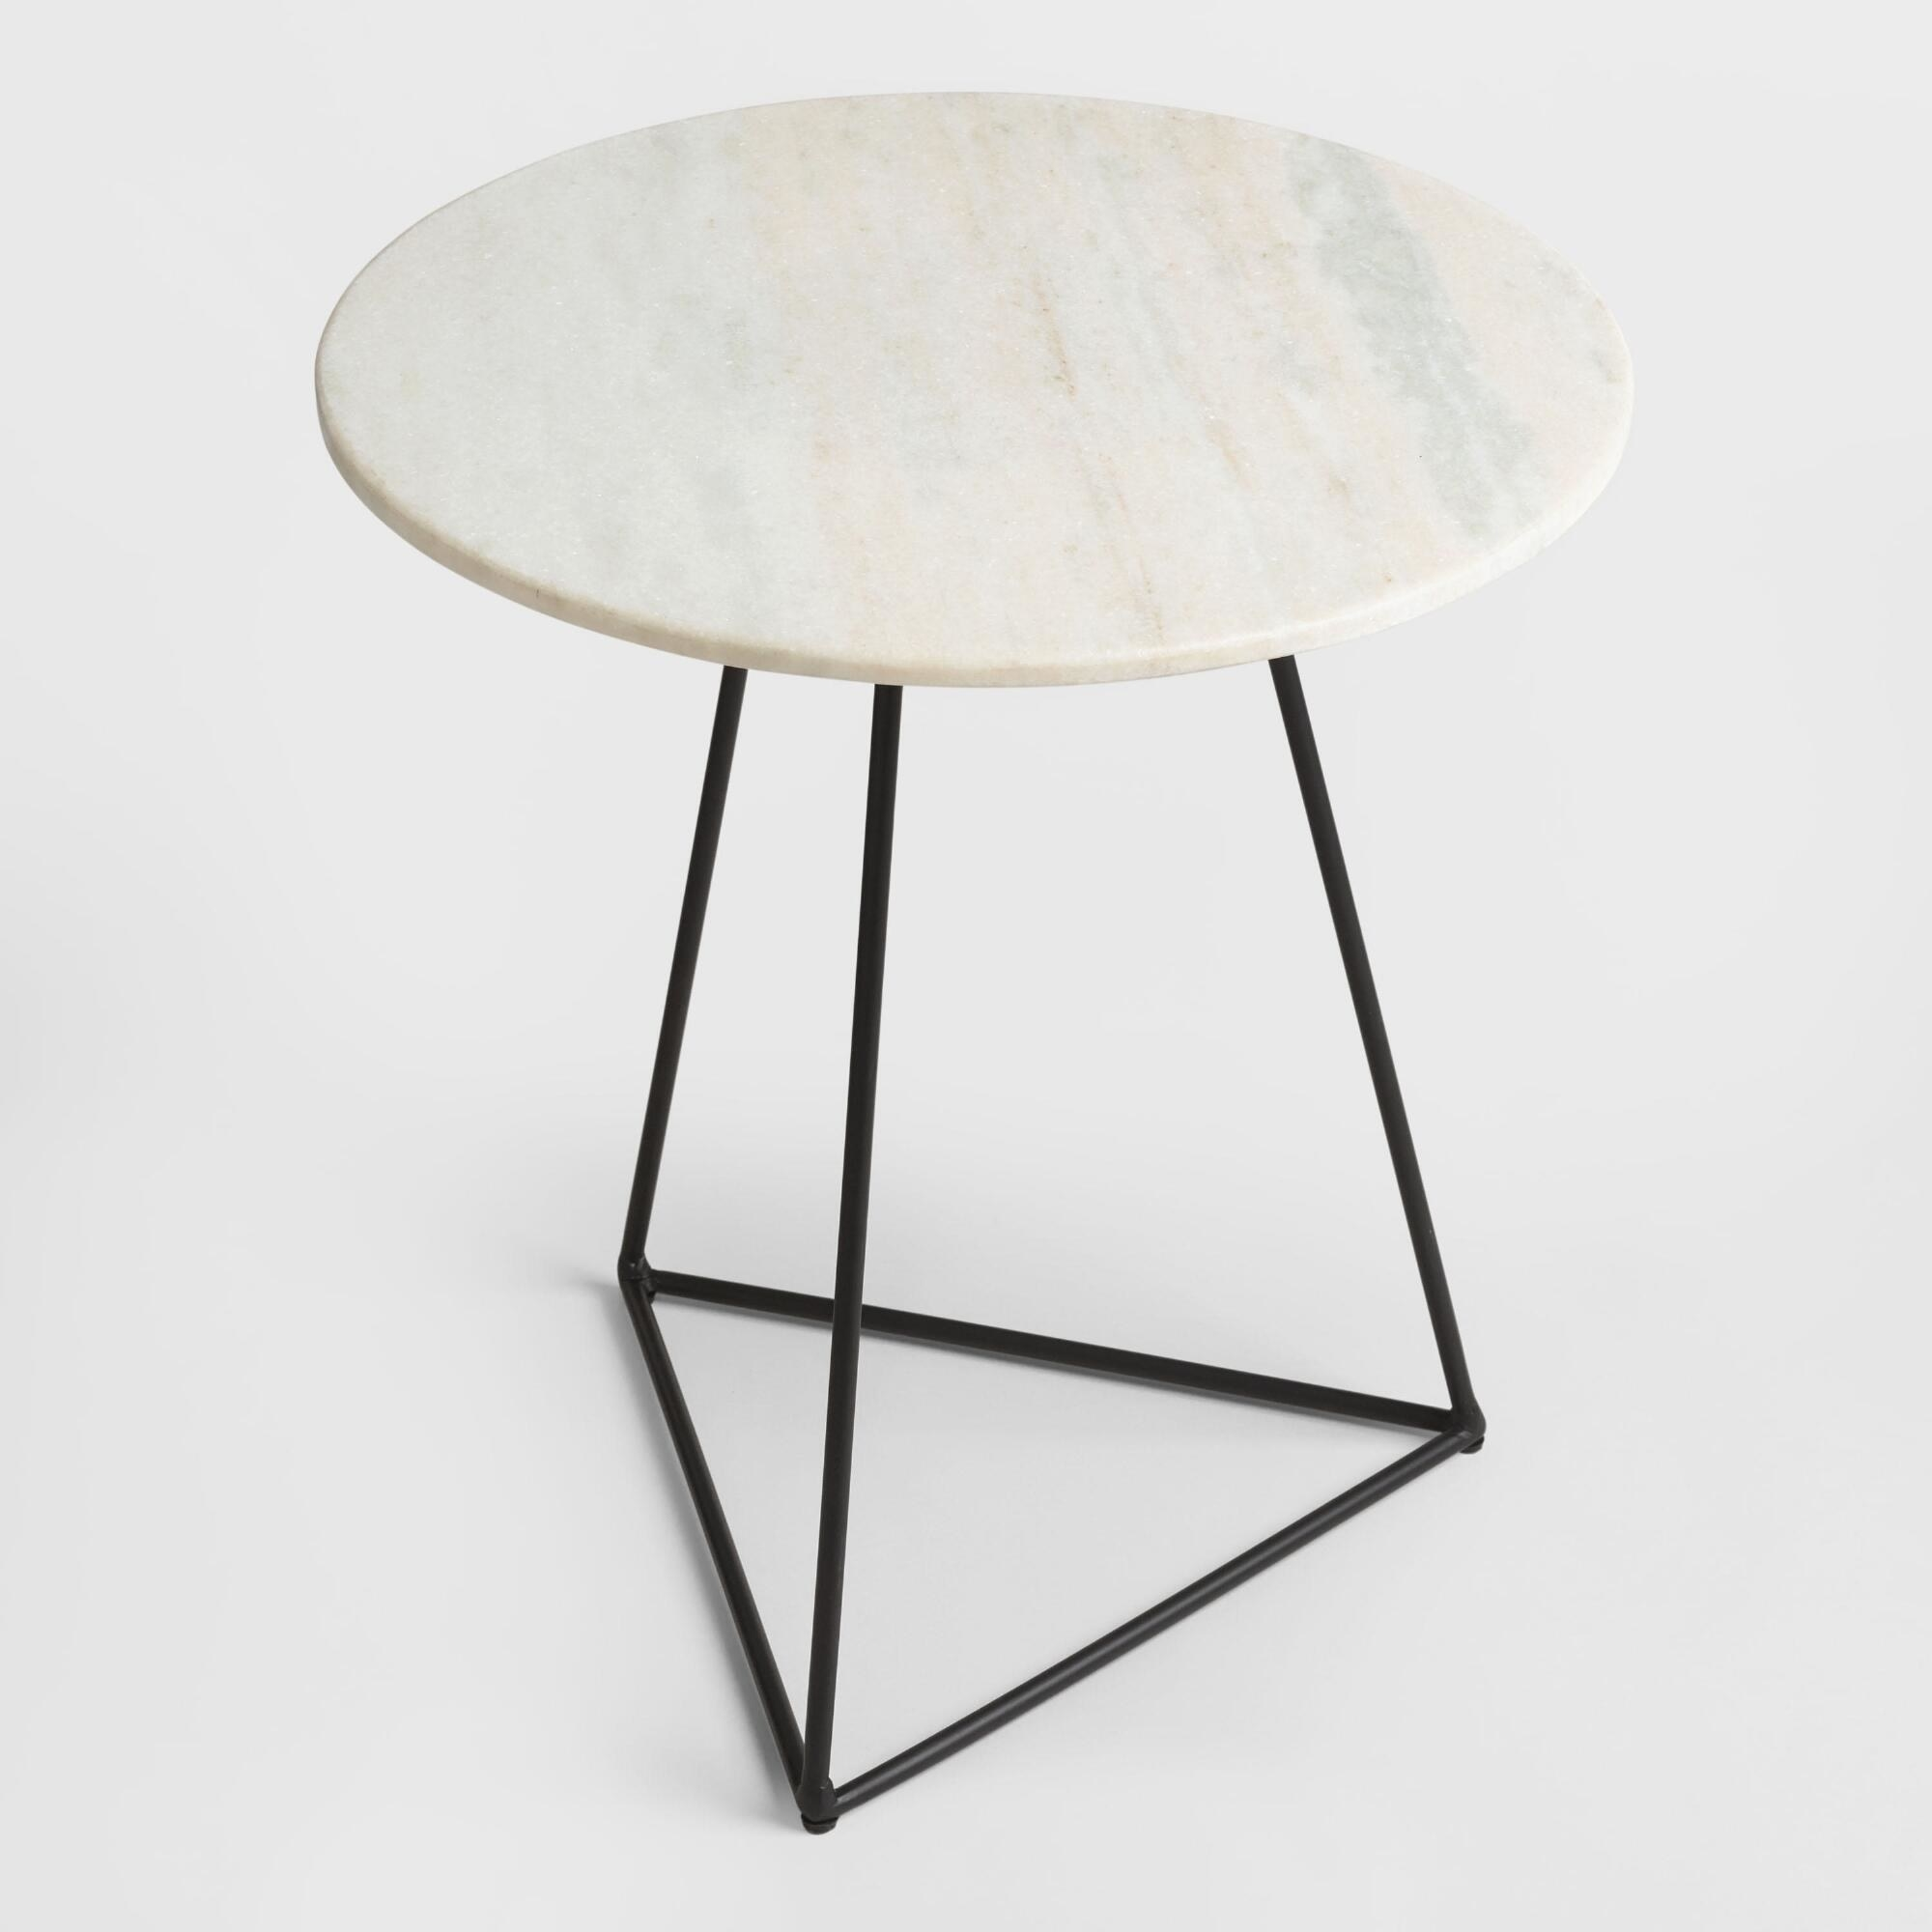 A round marble table with black metal triangle legs